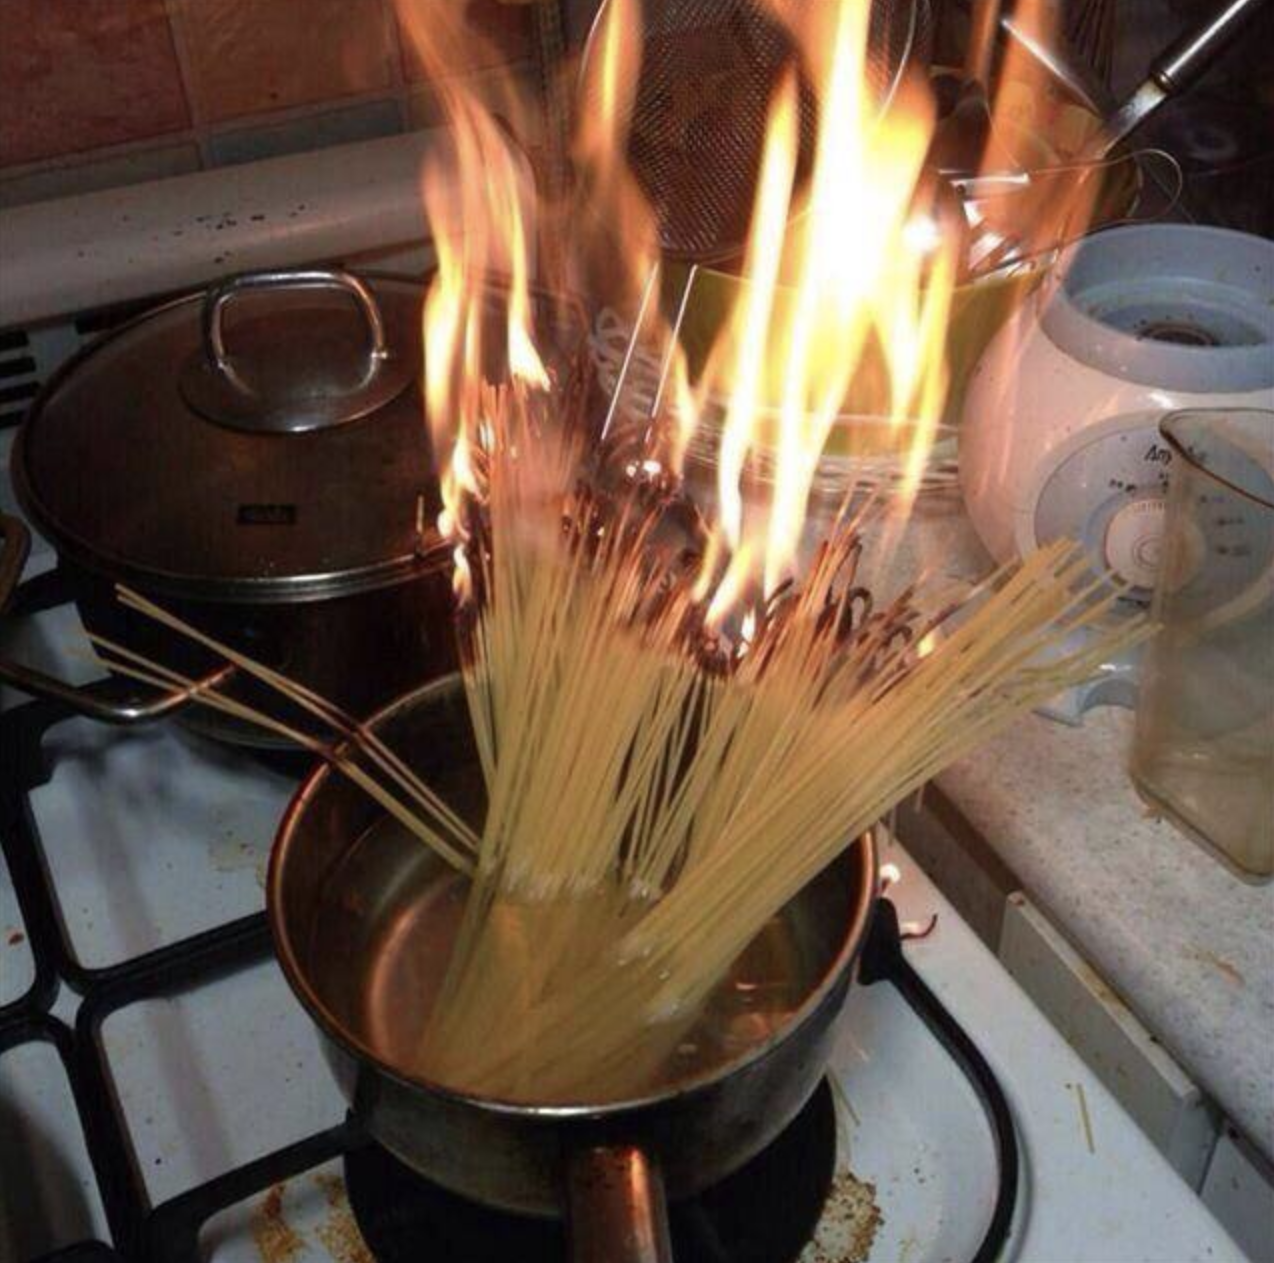 Whoever managed to create a bonfire out of spaghetti needs to be banned from every kitchen: